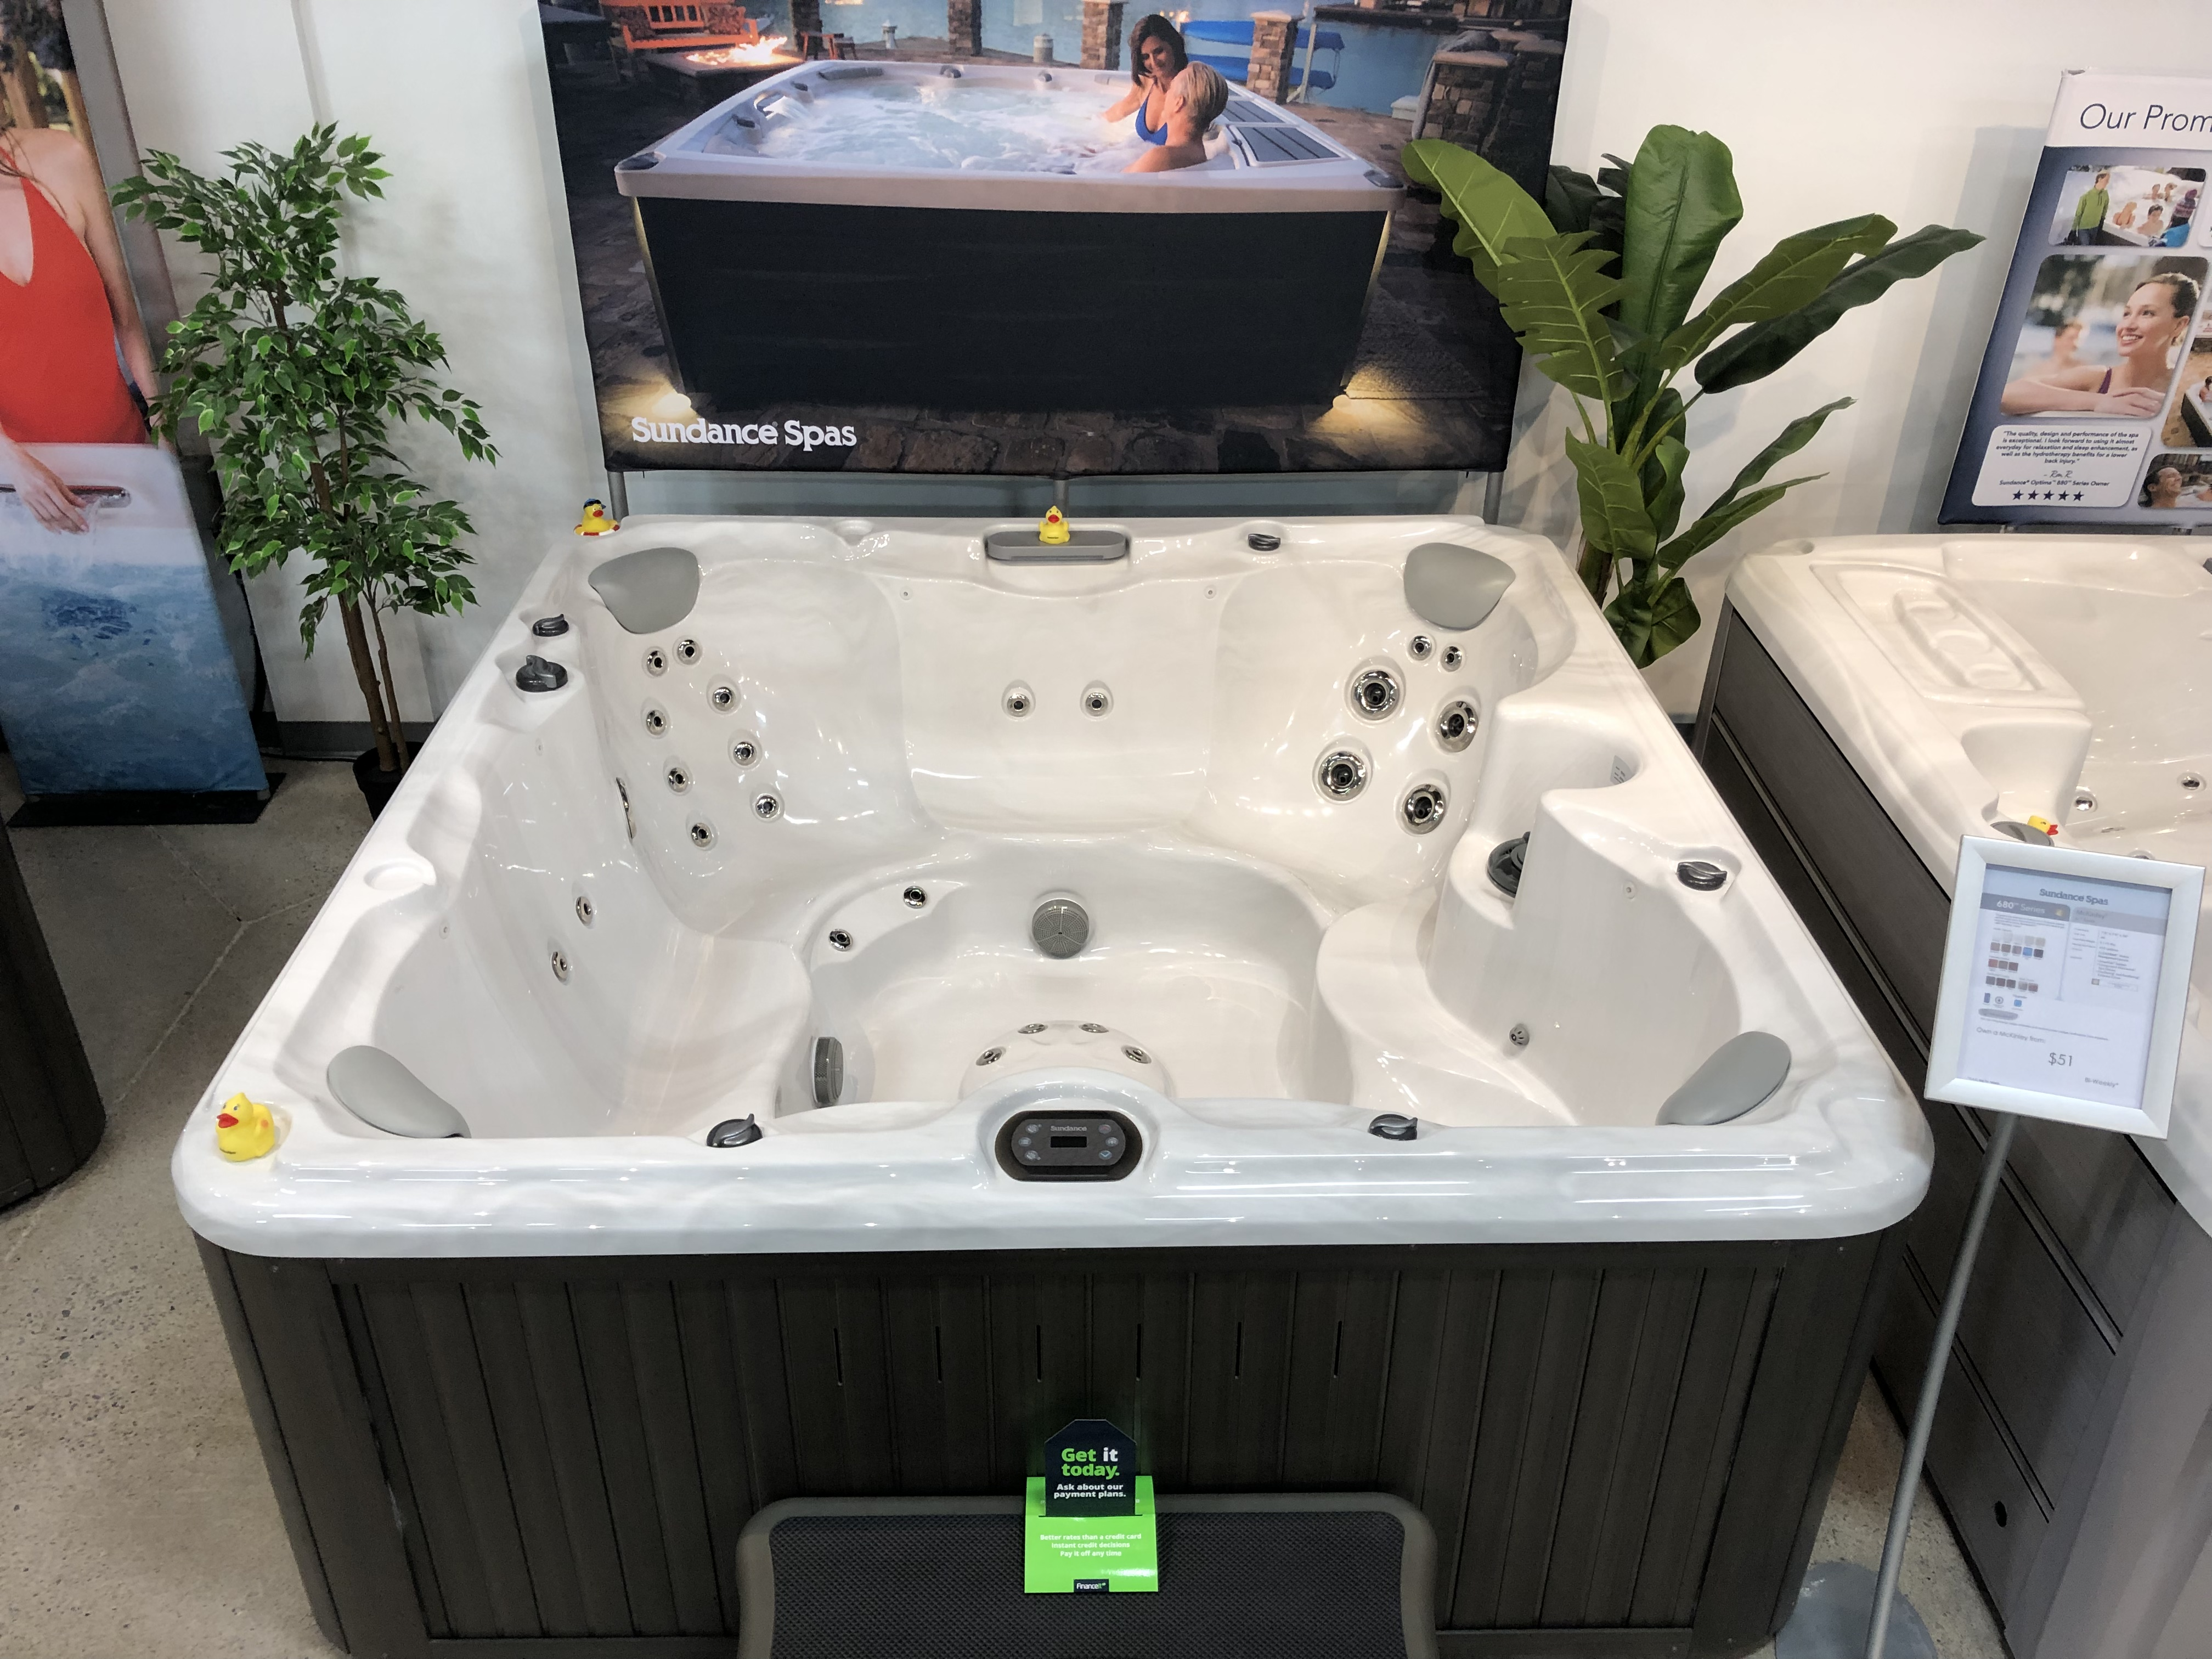 Sundance Spas McKinley 7 person hot tub spa jacuzzi whirlpool store near me Hamilton Ontario